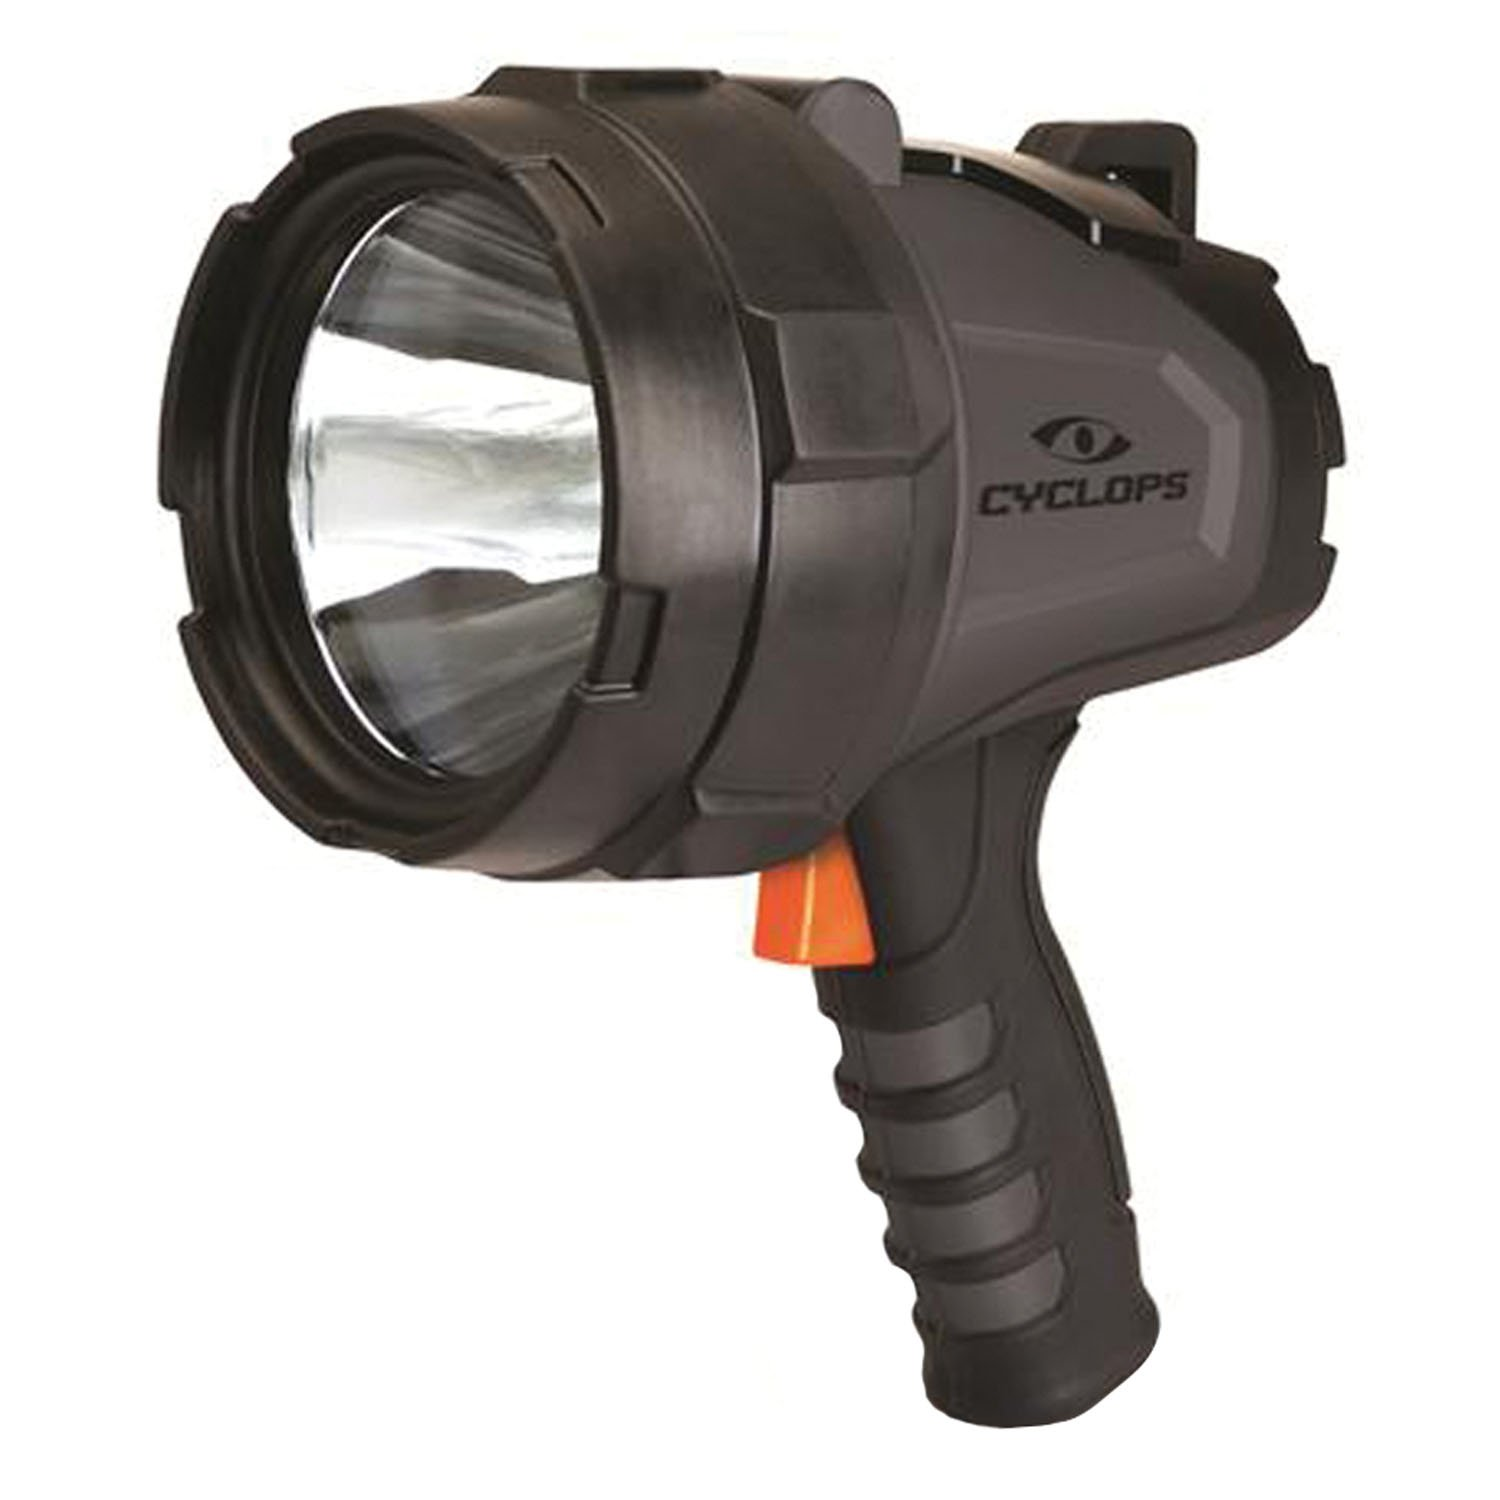 CYCLOPS CYC-580HHS 580-Lumen Handheld Rechargeable Spotlight 1126-CYC-580HHS